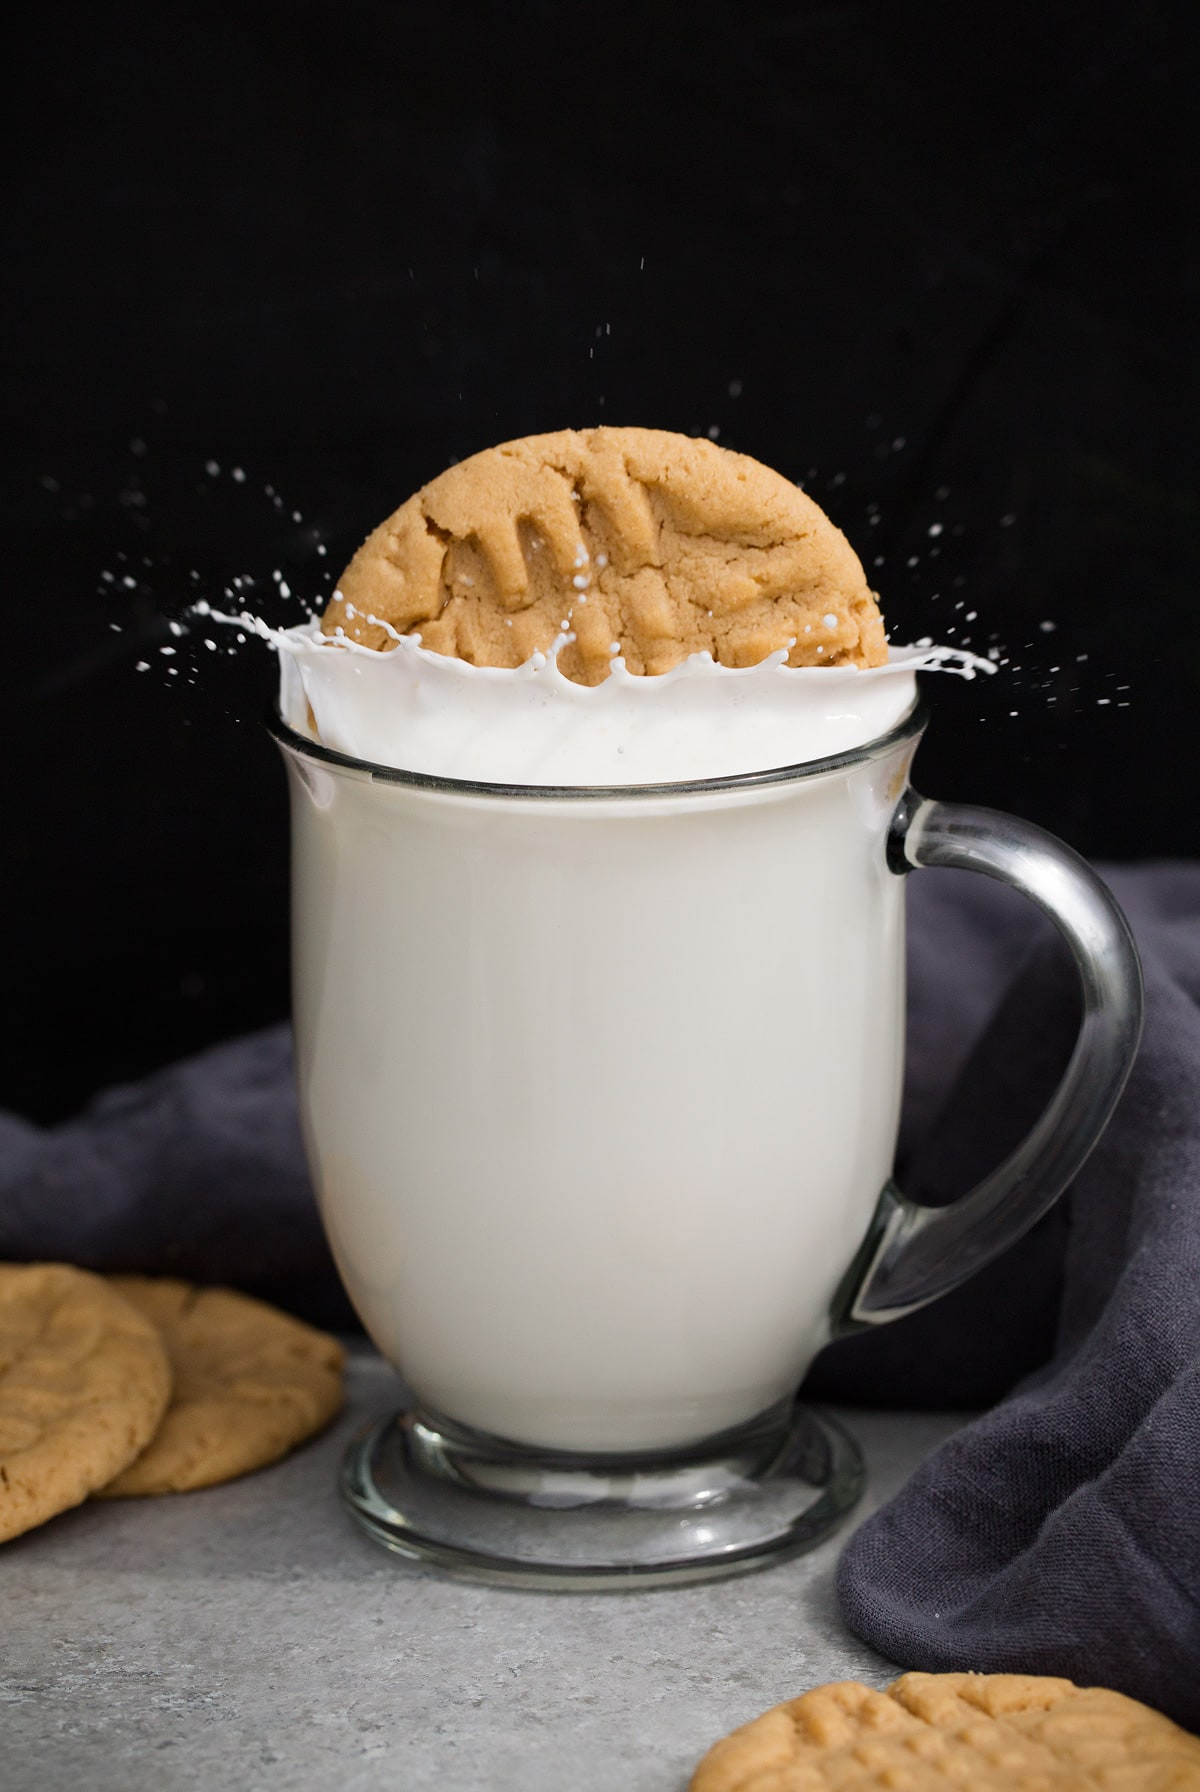 Peanut Butter Cookies dropped in milk and splashing.